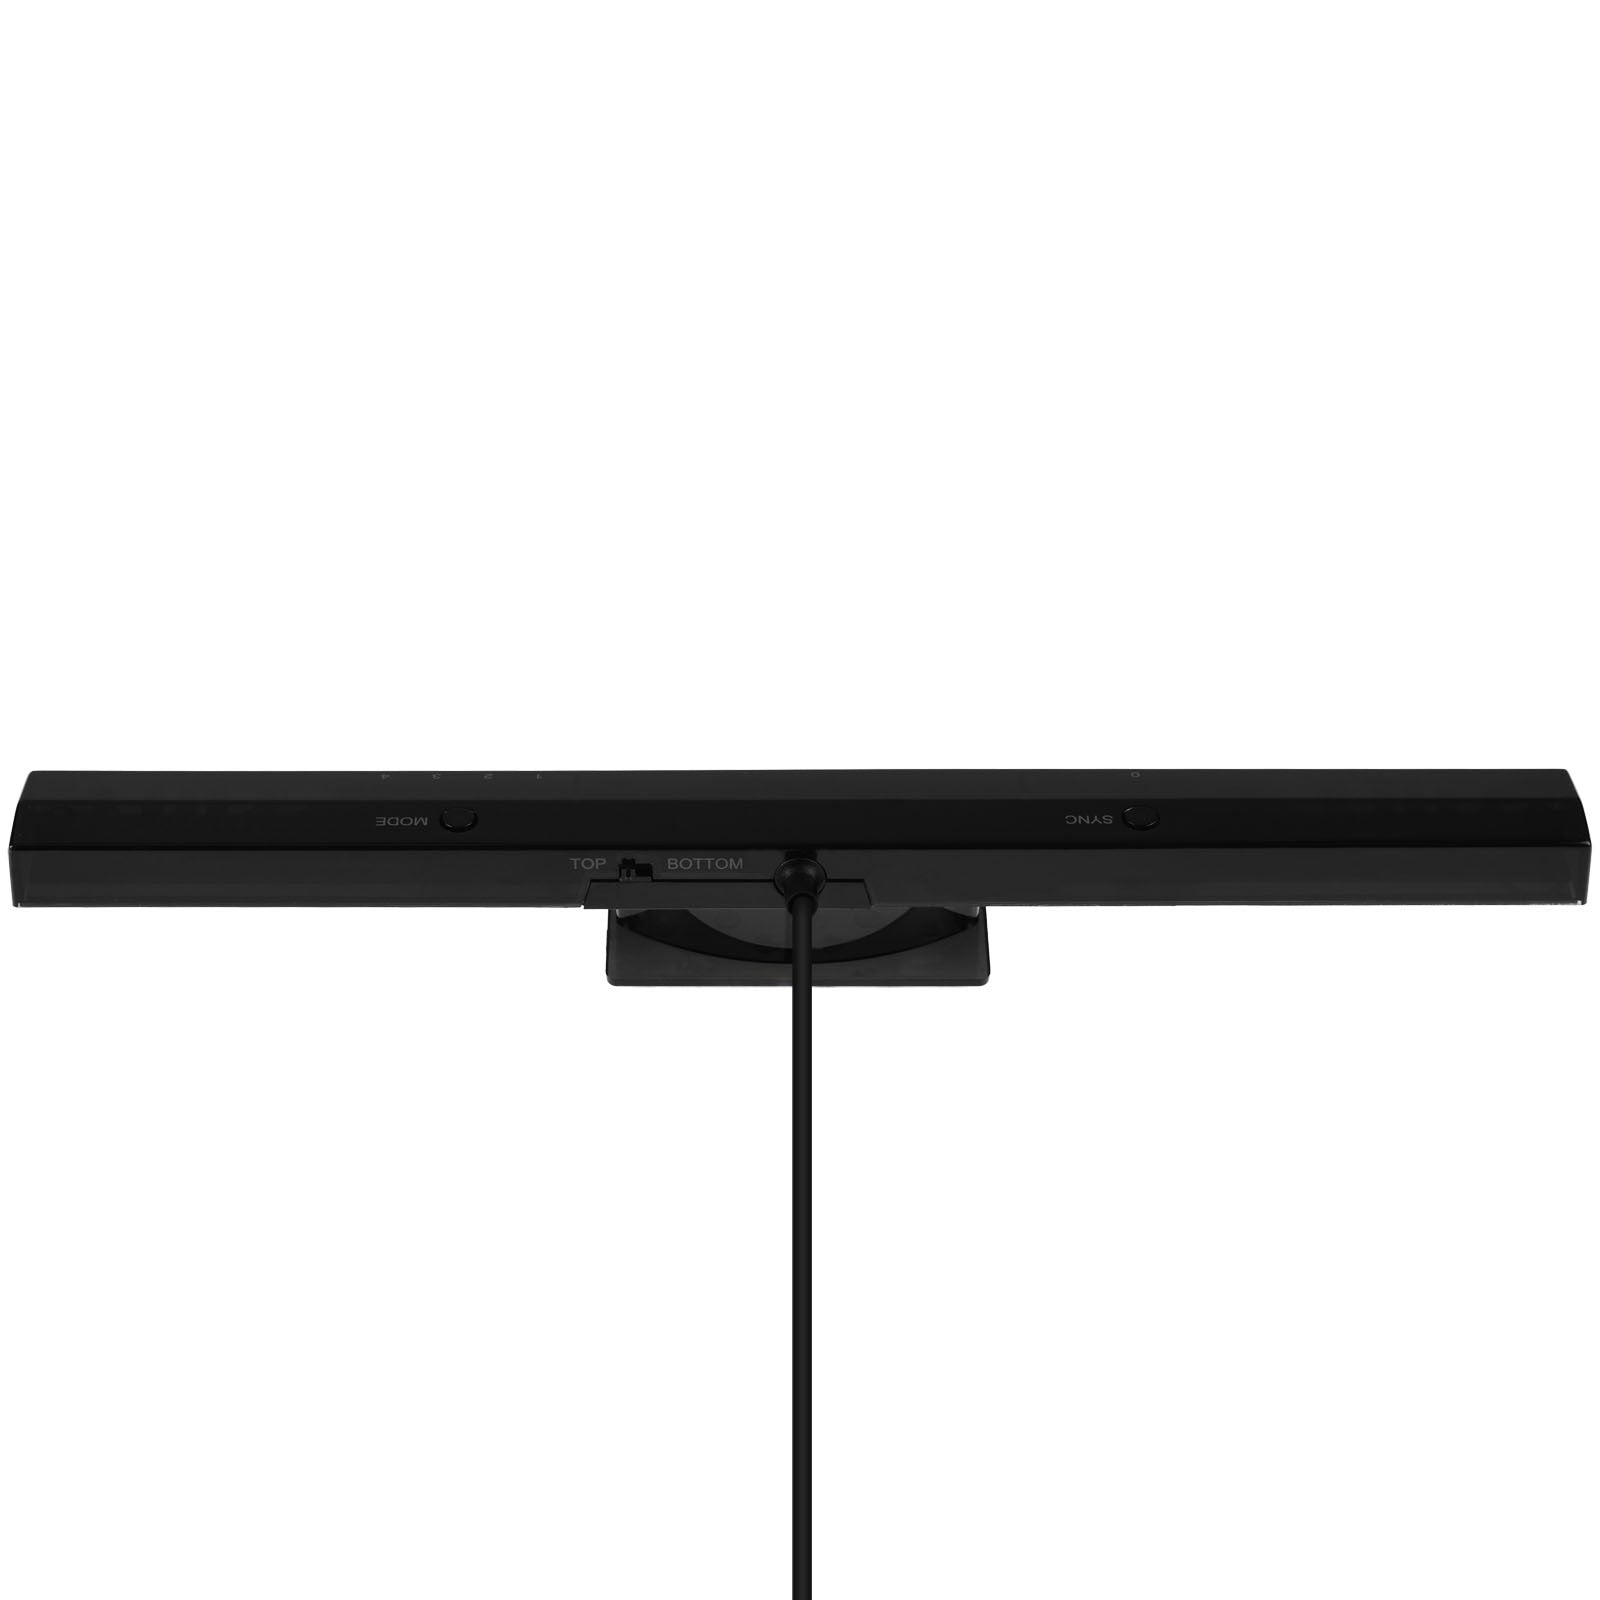 MayFlash Wireless On / Off Switch Sensor Dolphin Bar for Wii